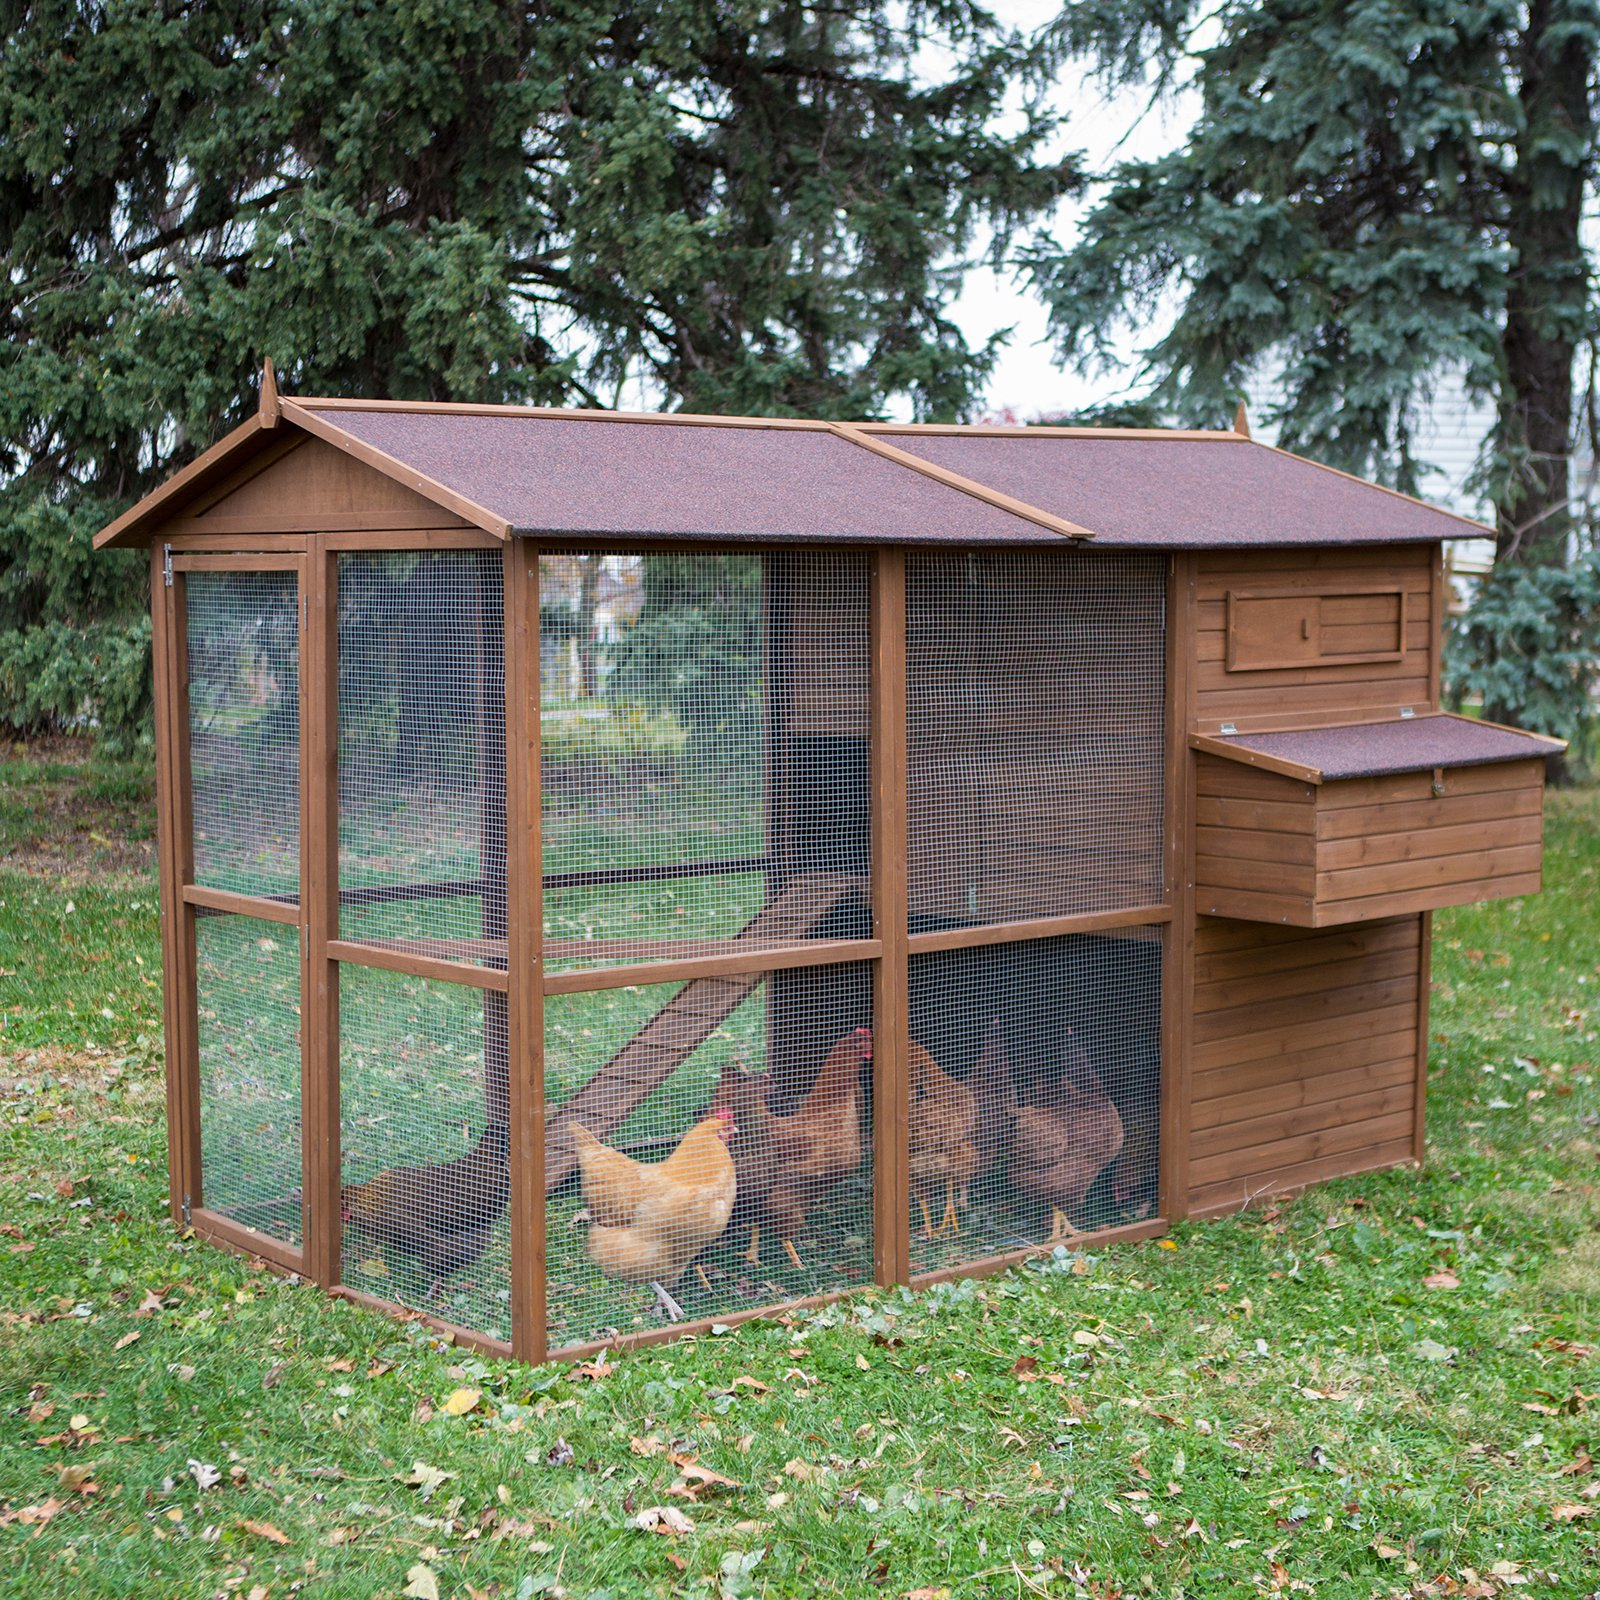 Boomer & George Large Poultry Palace Chicken Coop